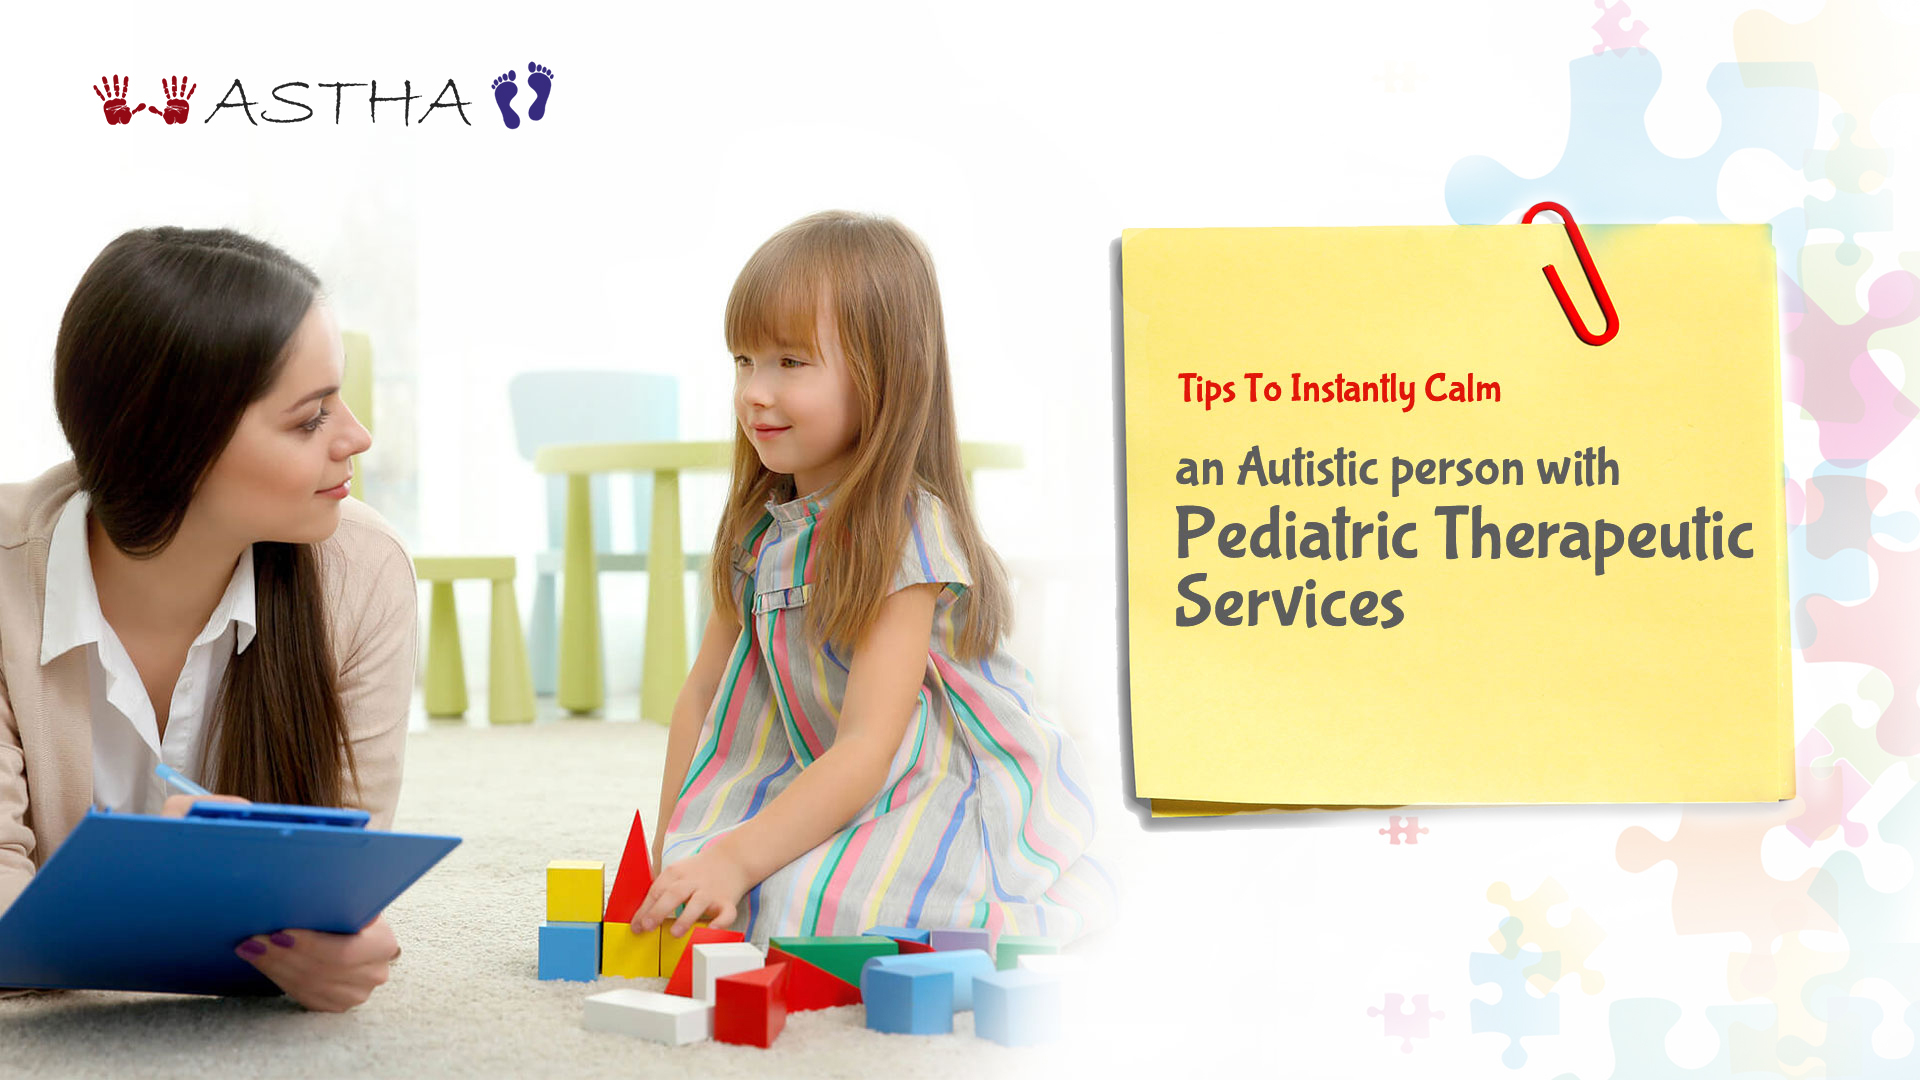 Tips To Instantly Calm An Autistic Person With Pediatric Therapeutic Services